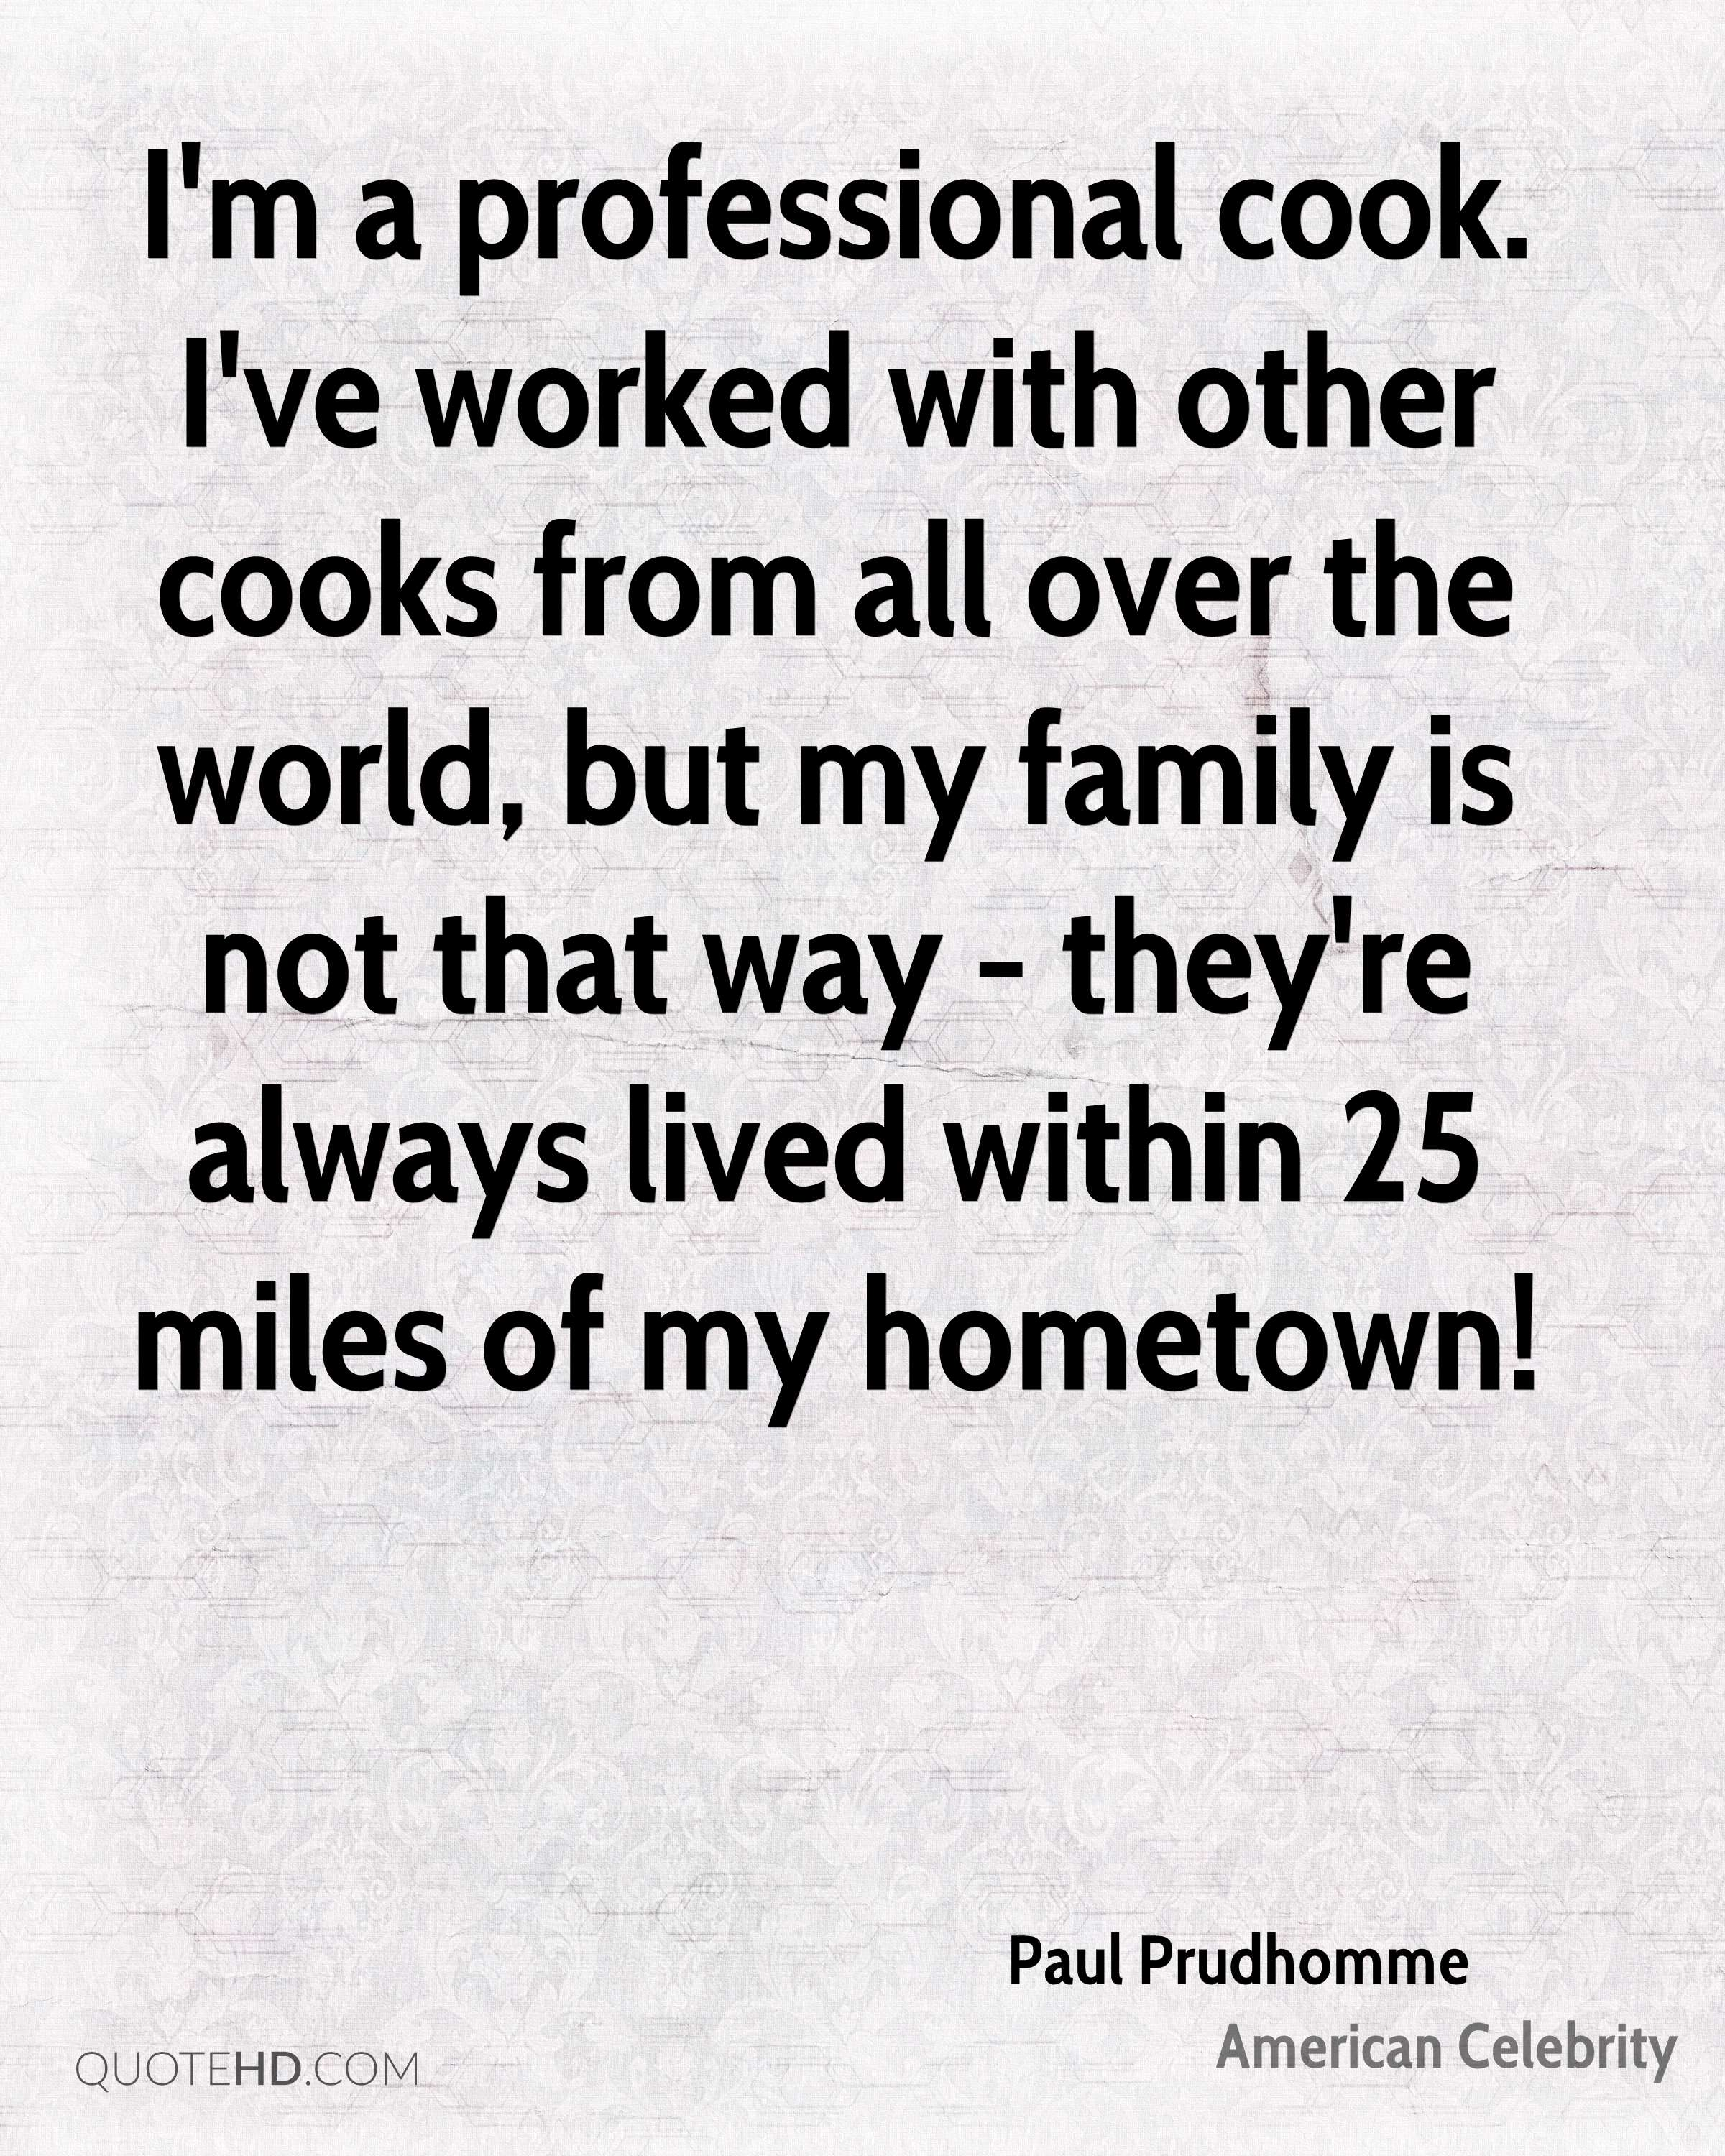 I'm a professional cook. I've worked with other cooks from all over the world, but my family is not that way - they're always lived within 25 miles of my hometown!